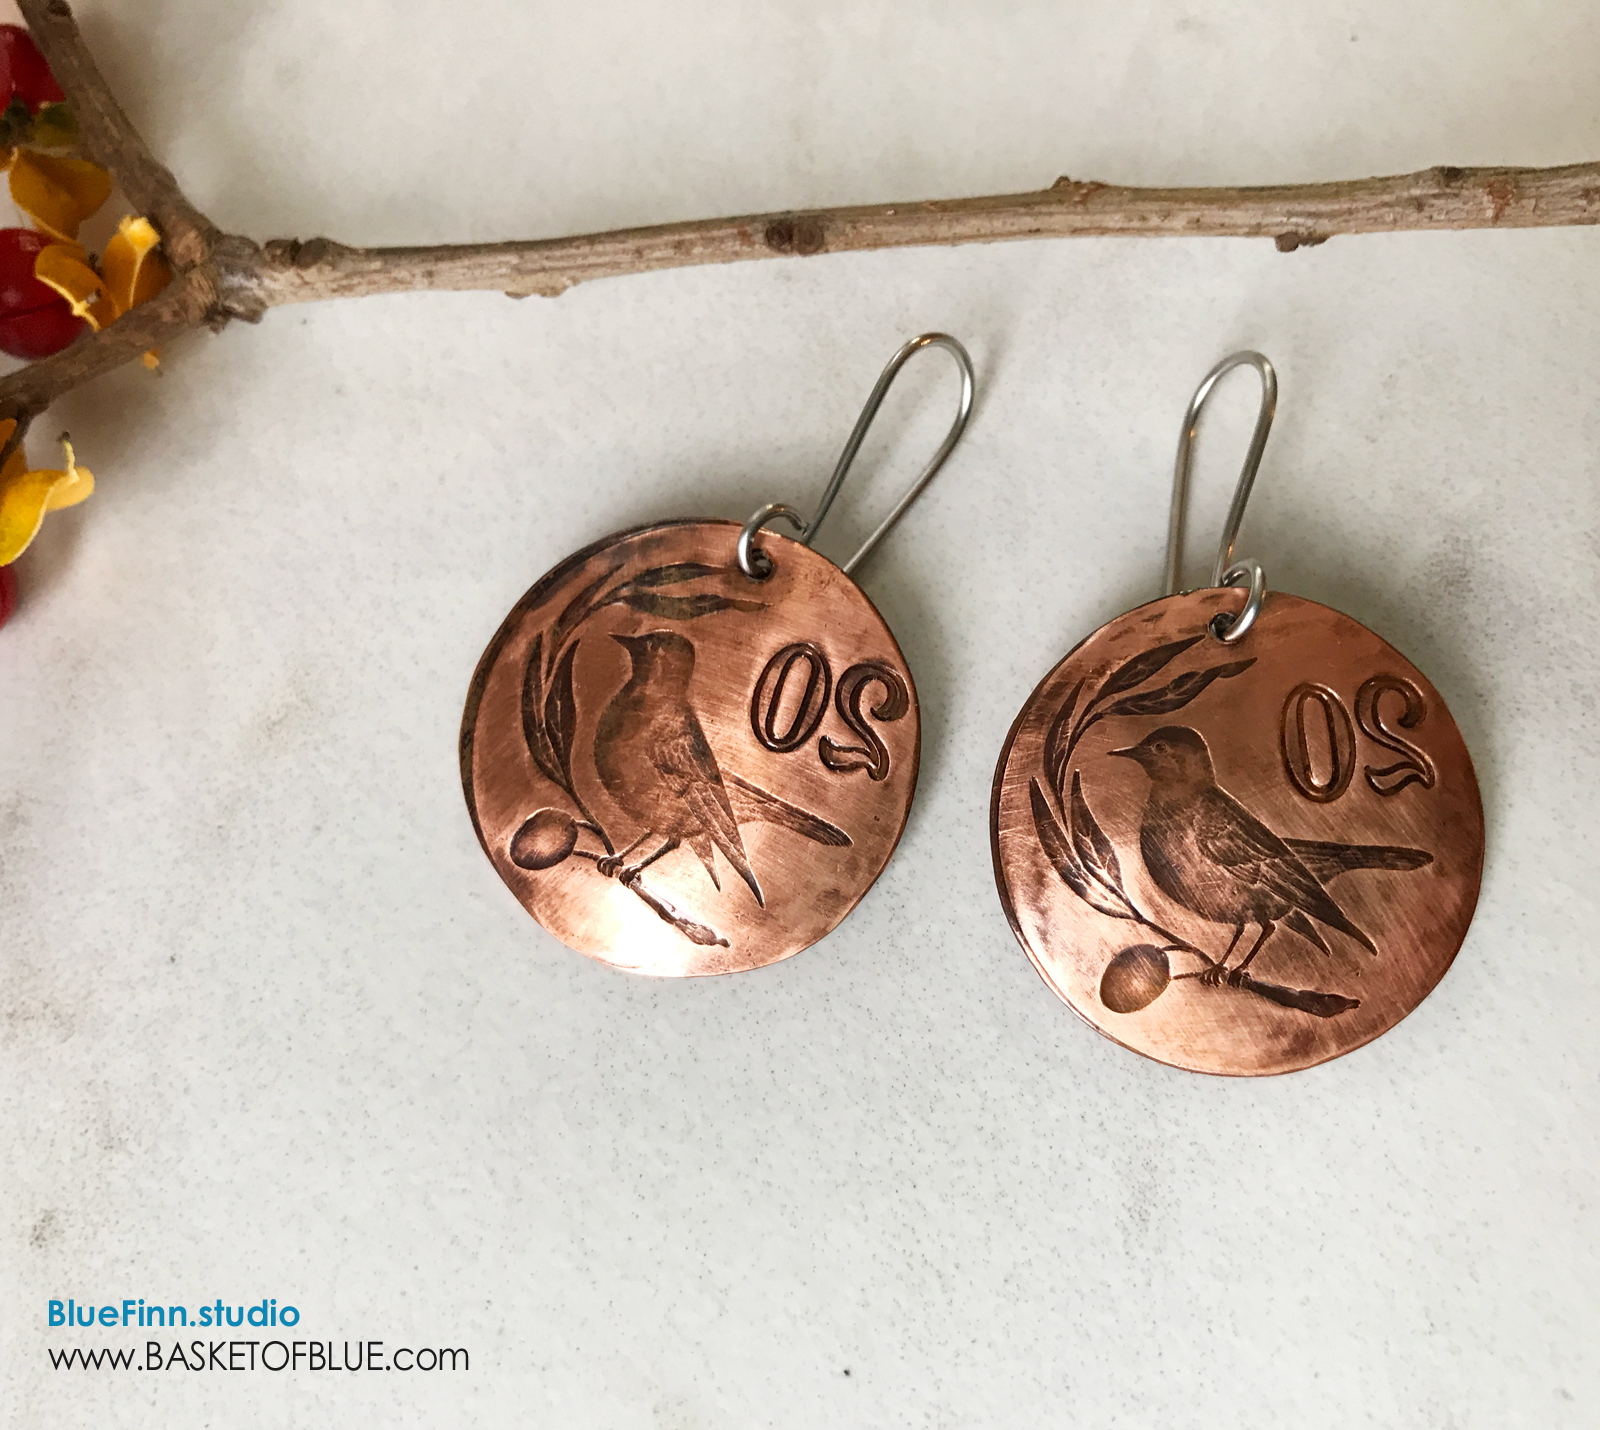 Copper Coin Earrings Bird on a Wire - Basket of Blue